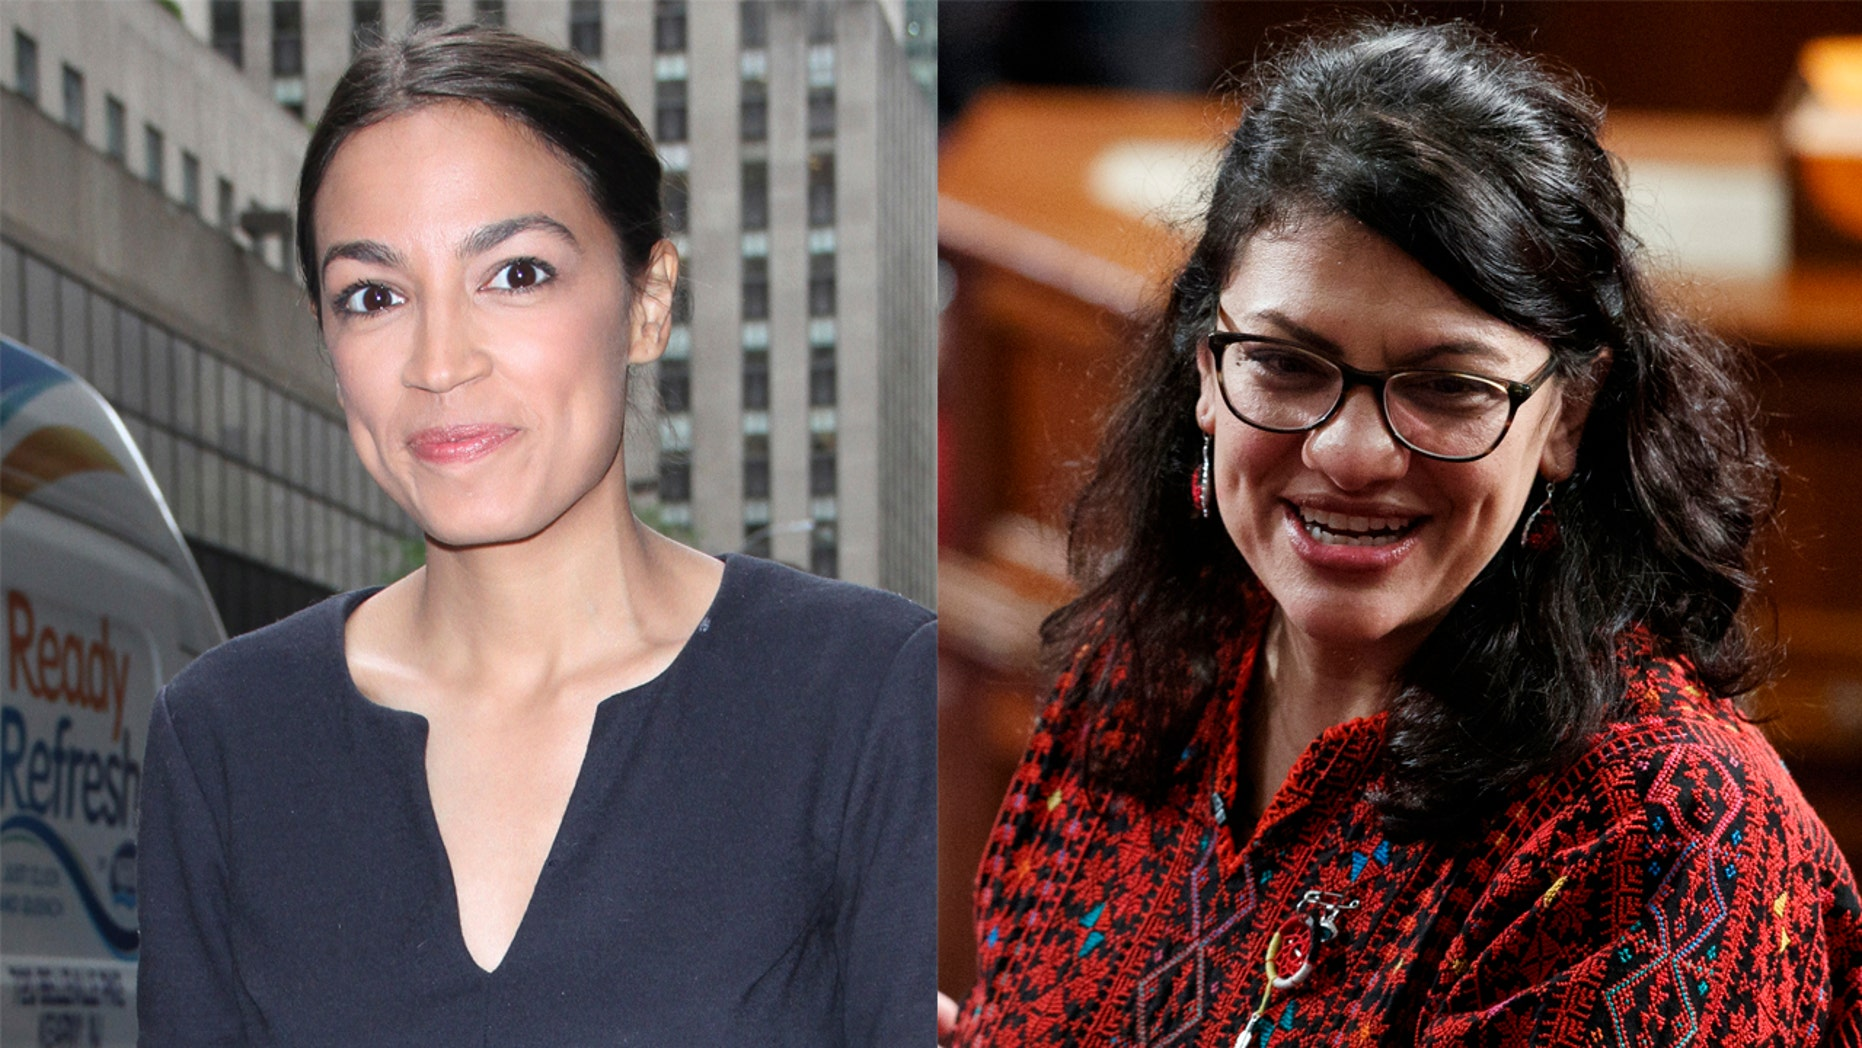 Rashida Tlaib: Only Sorry Calling Trump 'Motherf**ker' Became 'Distraction'